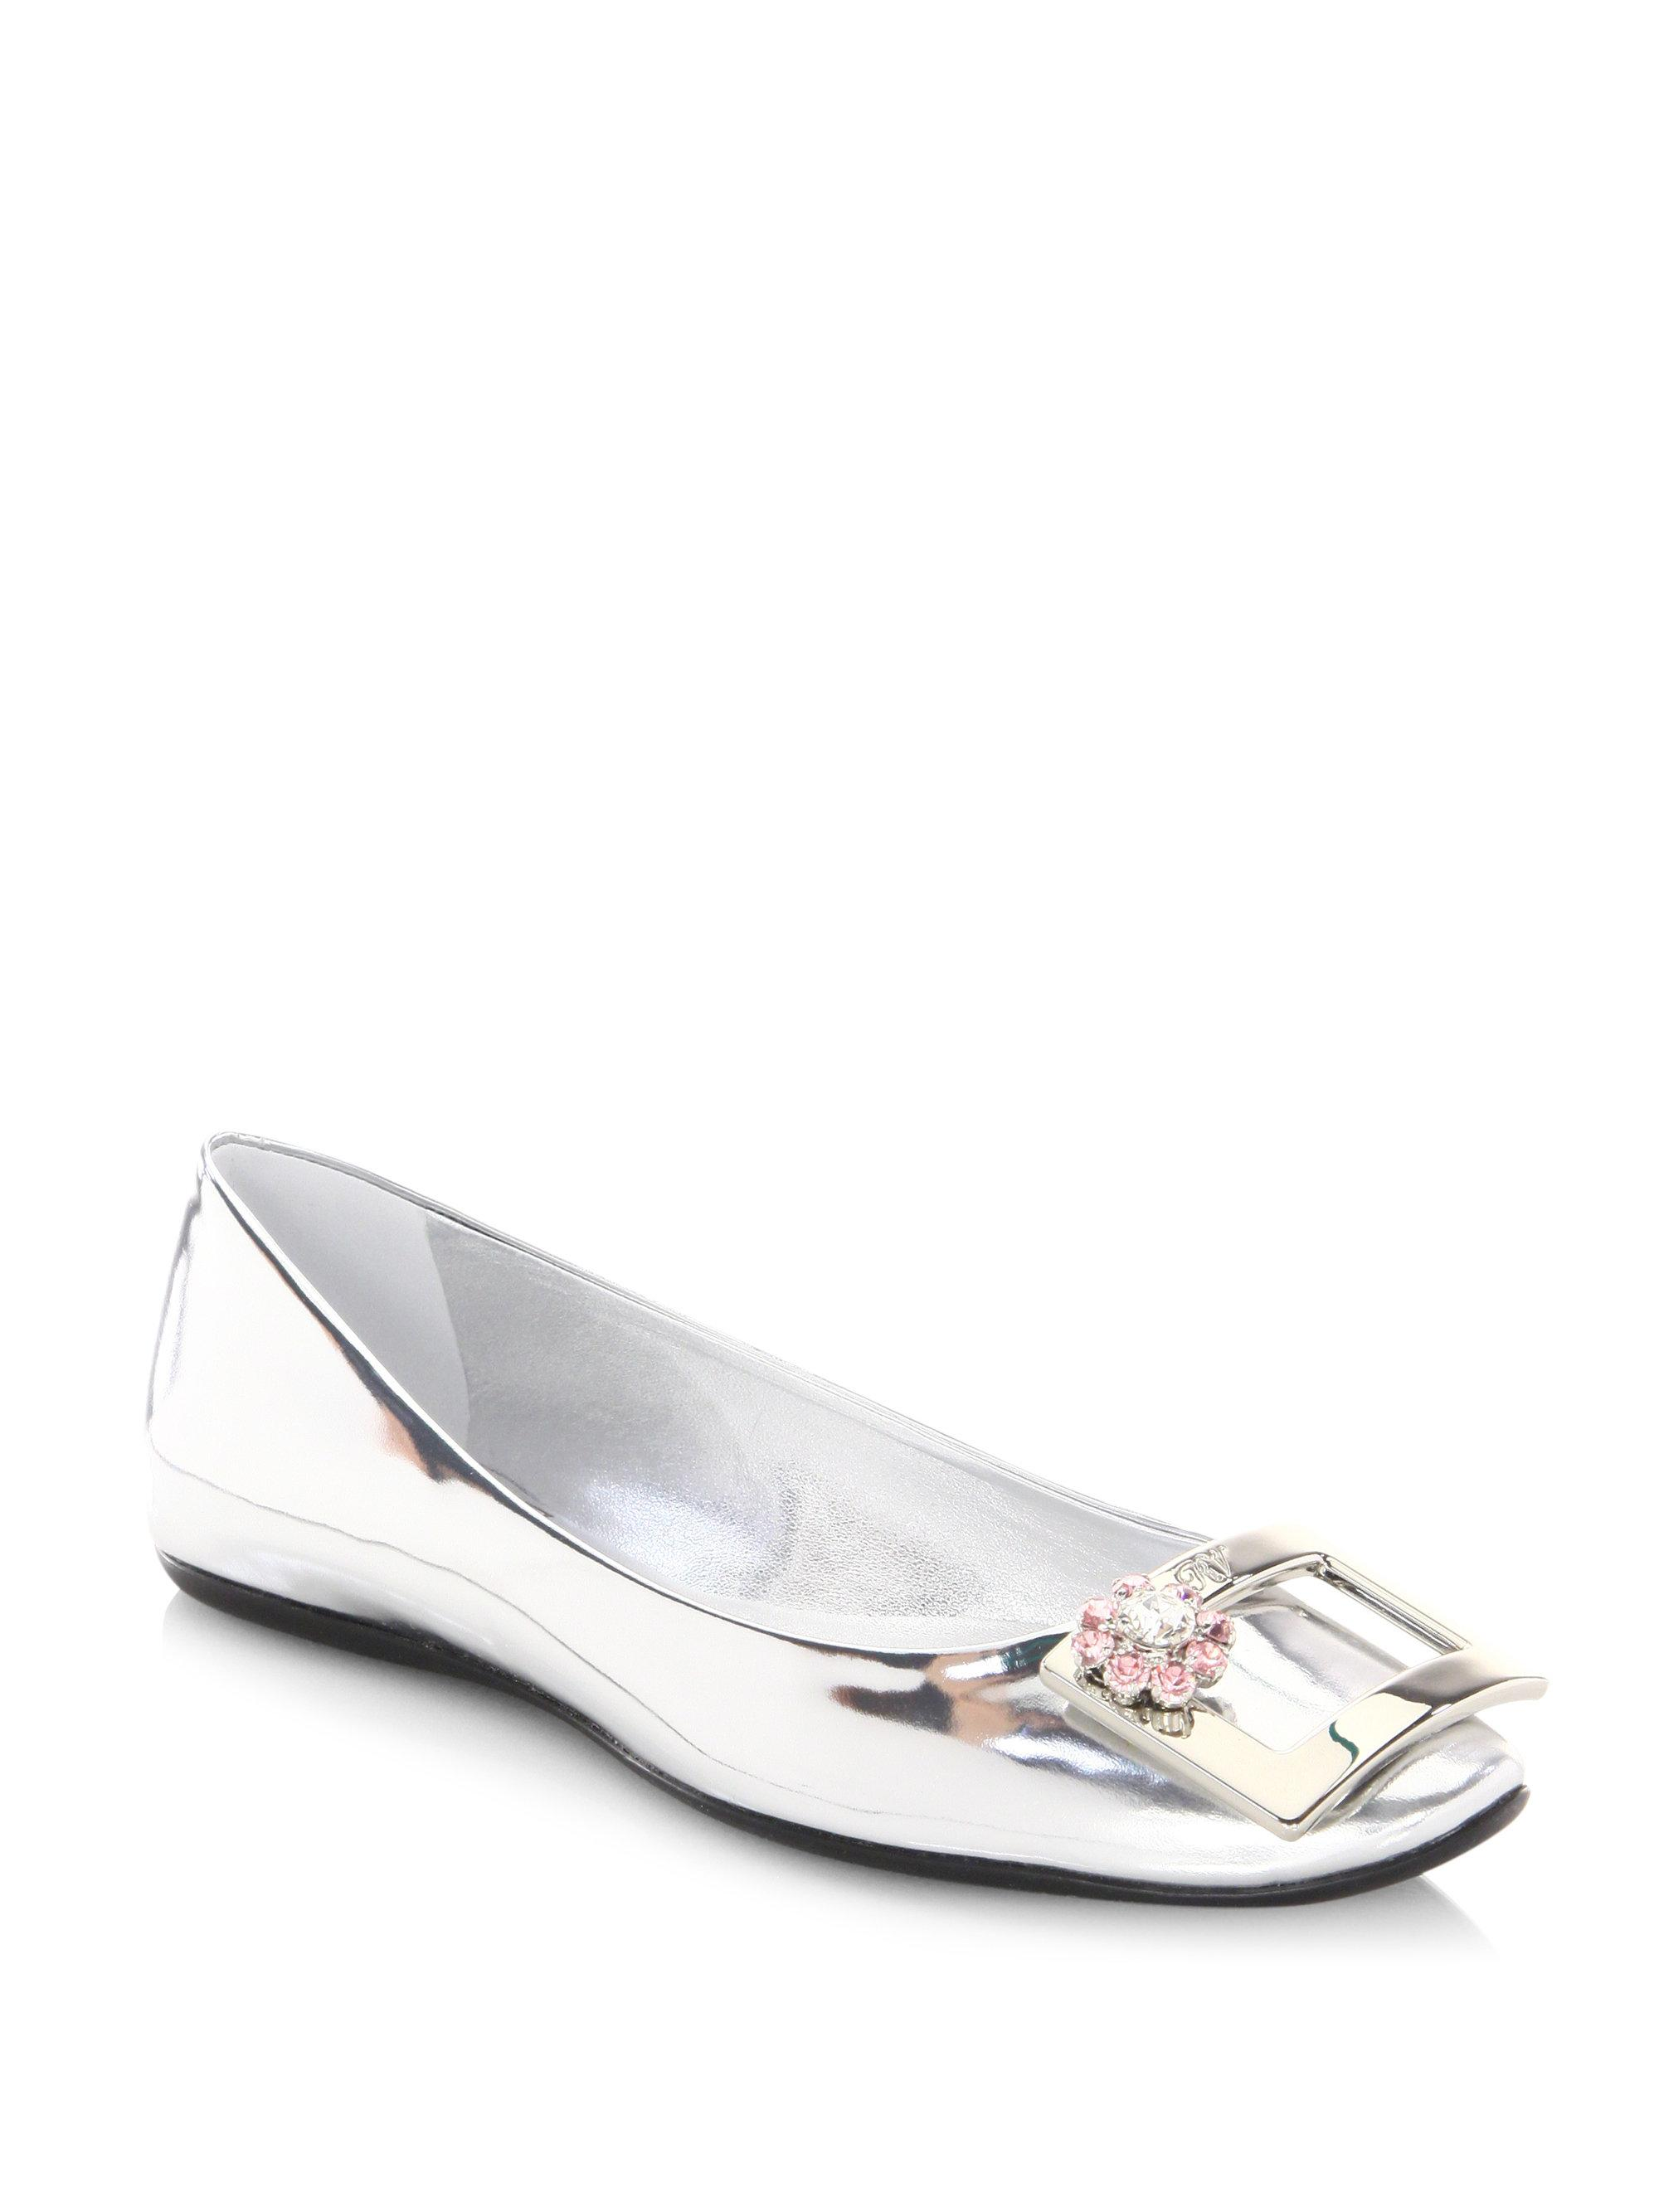 b32613cae Lyst - Roger Vivier Jeweled Leather Ballet Flats in Metallic